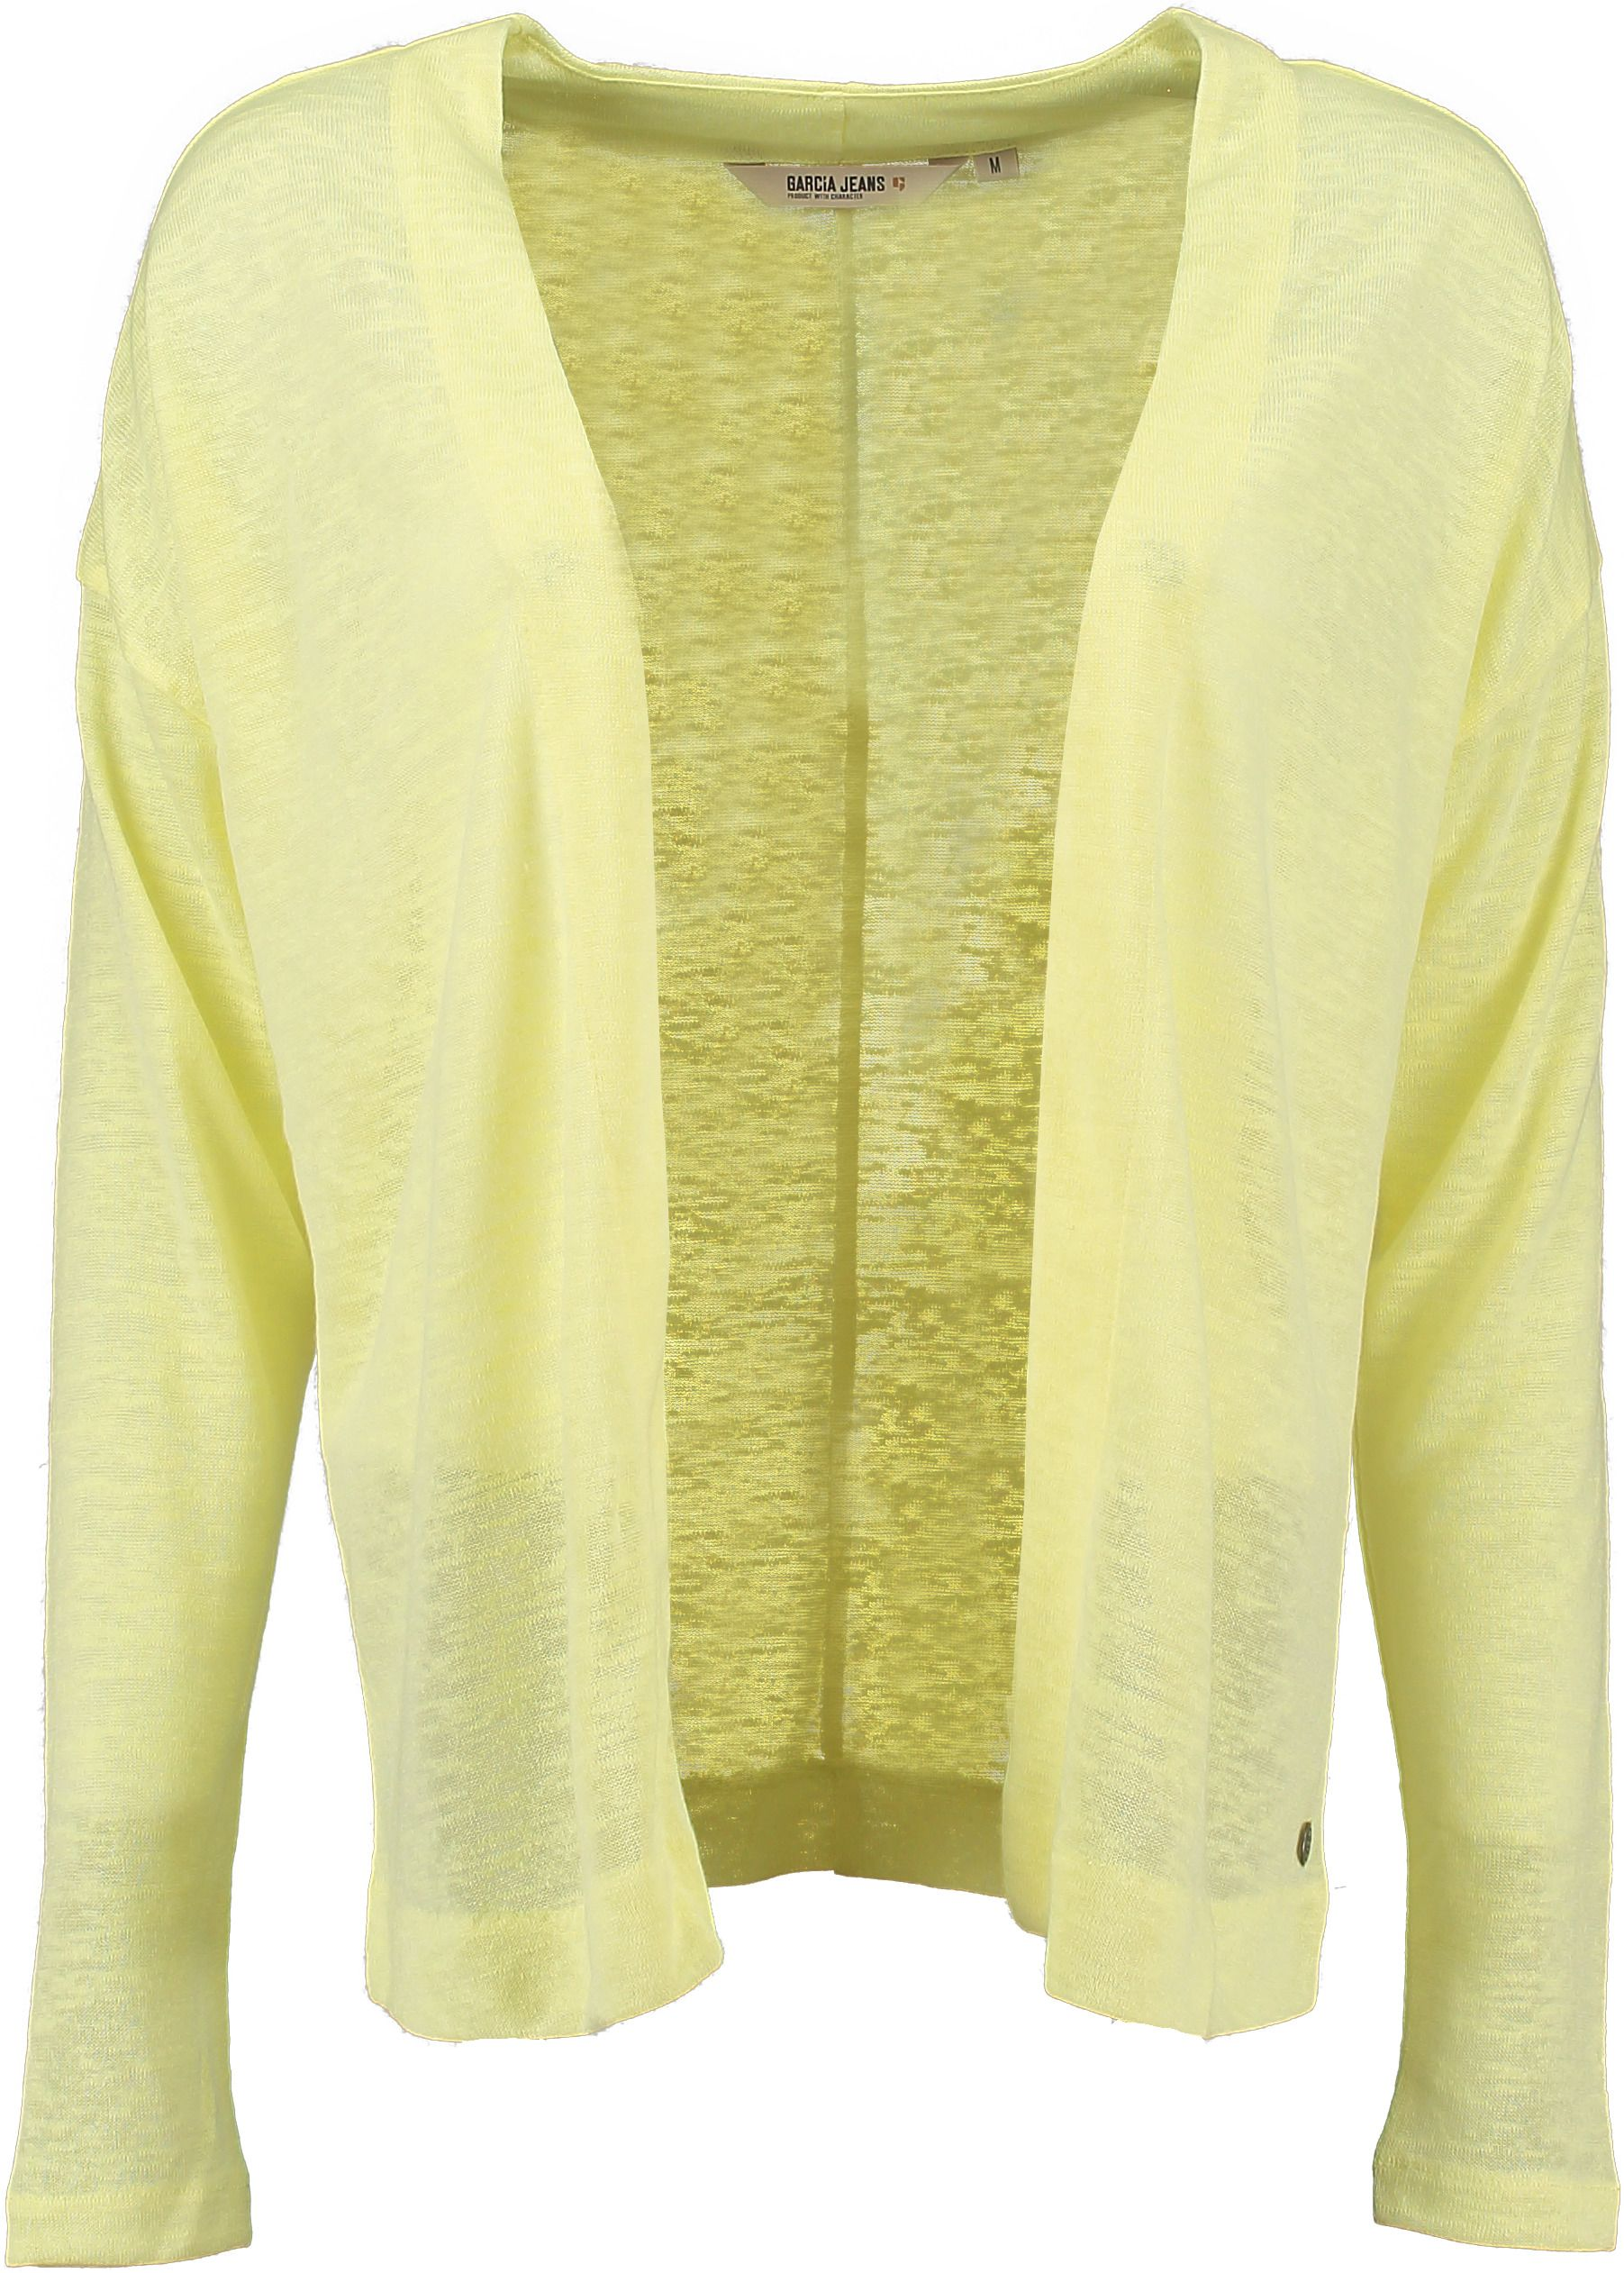 Yellow Cardigan House Of Fraser 121